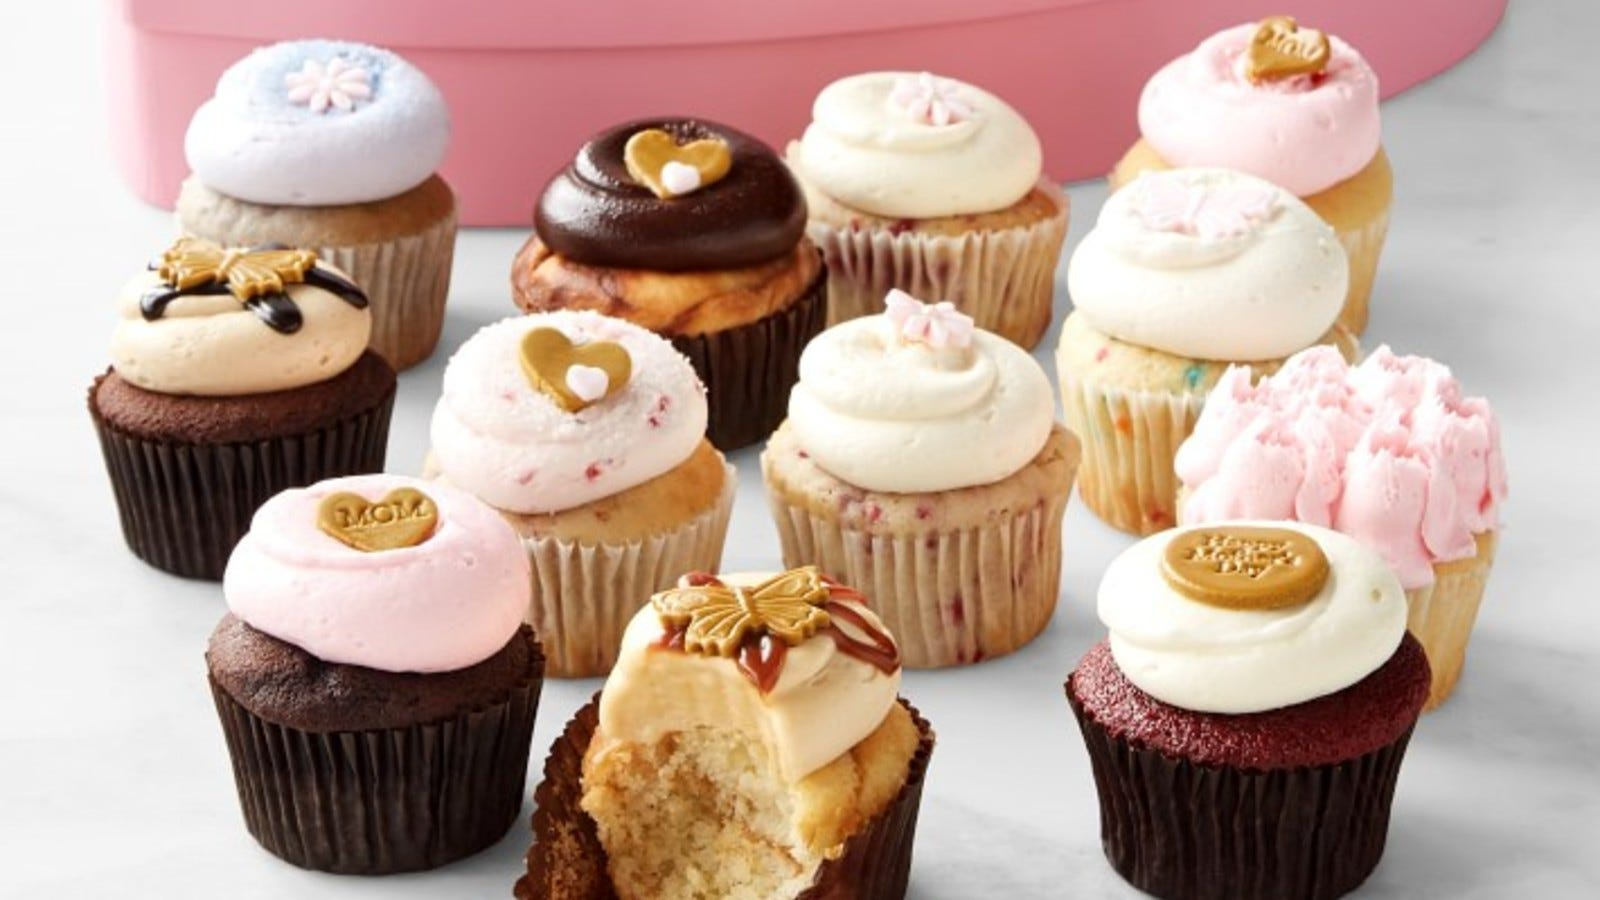 an assortment of frosted cupcakes